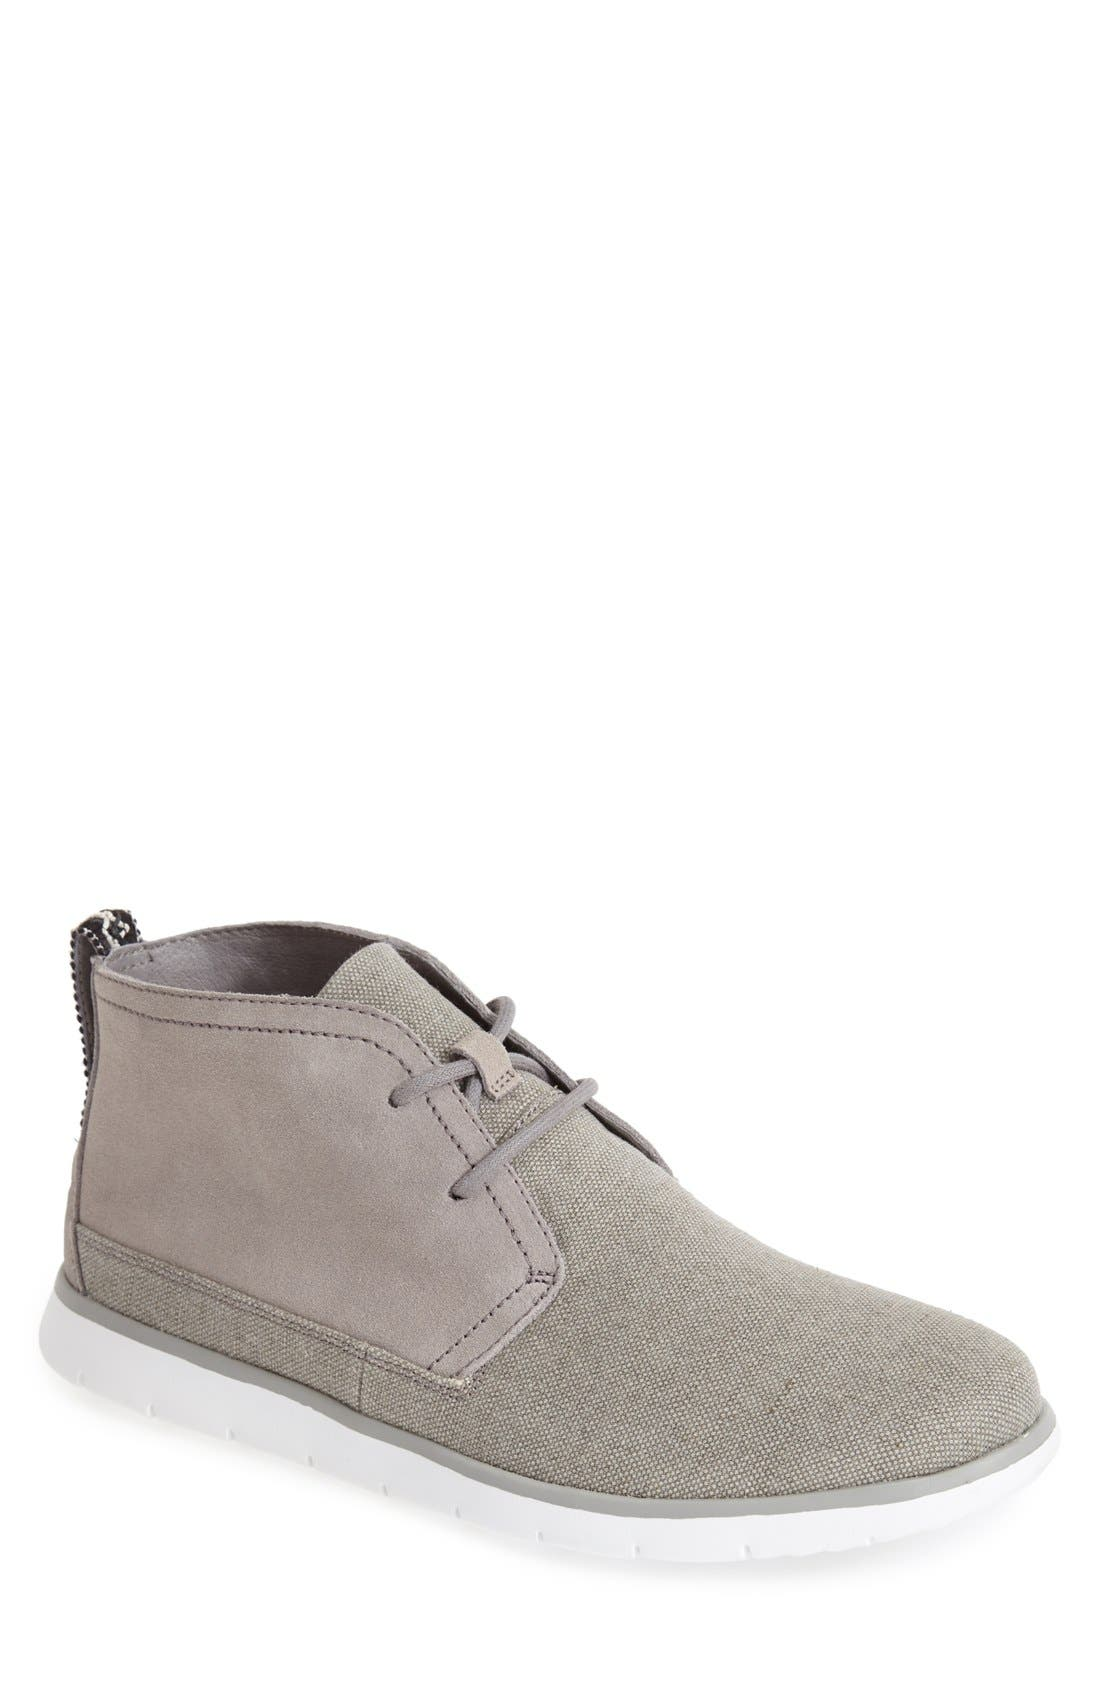 Alternate Image 1 Selected - UGG® 'Freamon' Chukka Sneaker (Men)